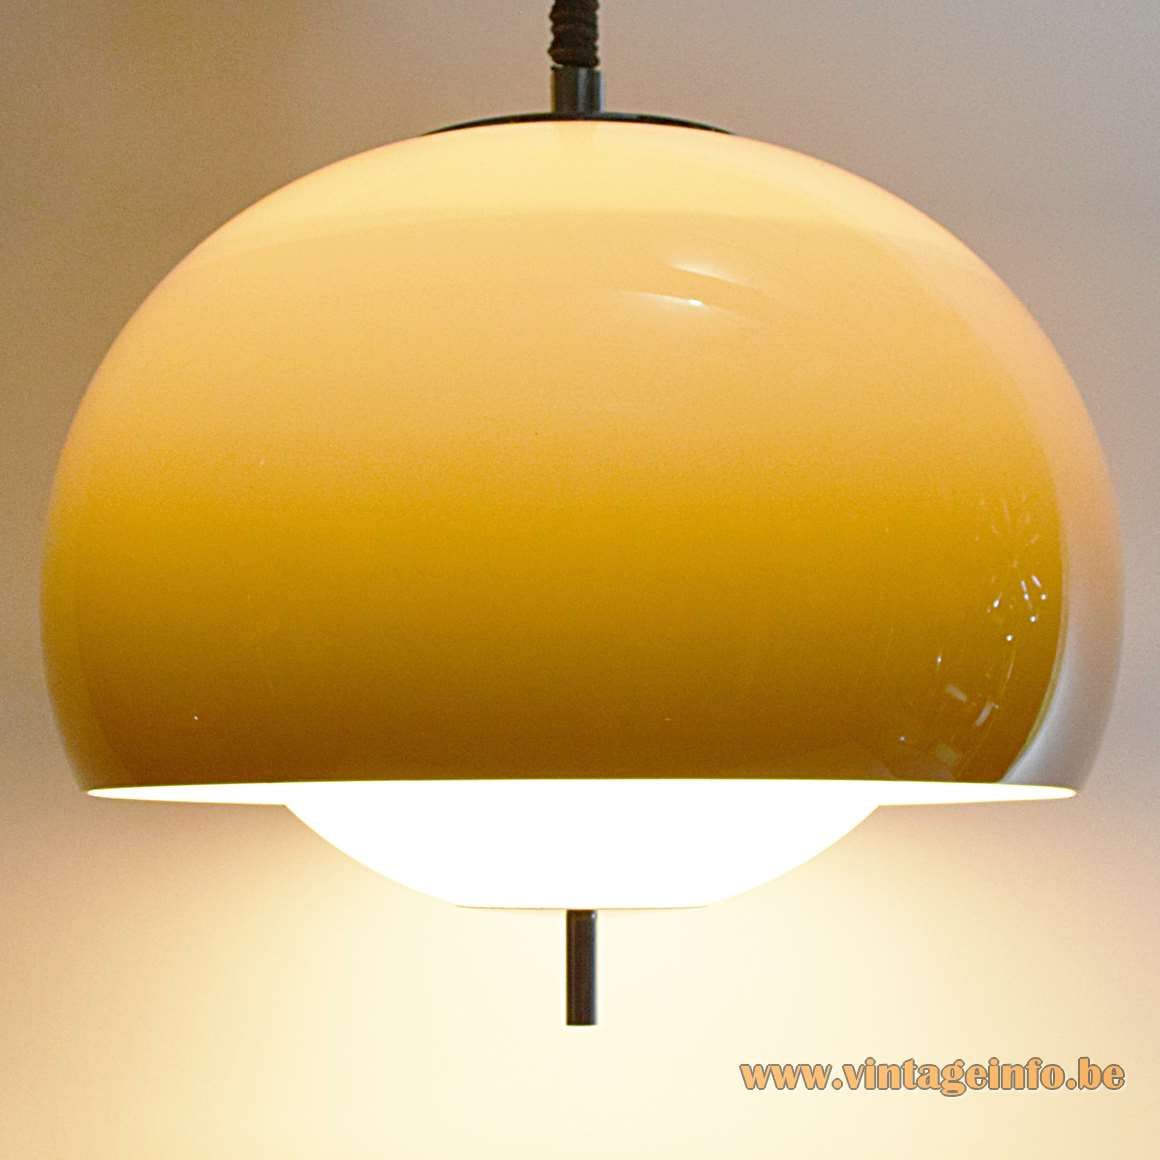 Harvey Guzzini Burgos Pendant Lamp rise & fall round acrylic perpex lampshade white diffuser 1970s chrome handle